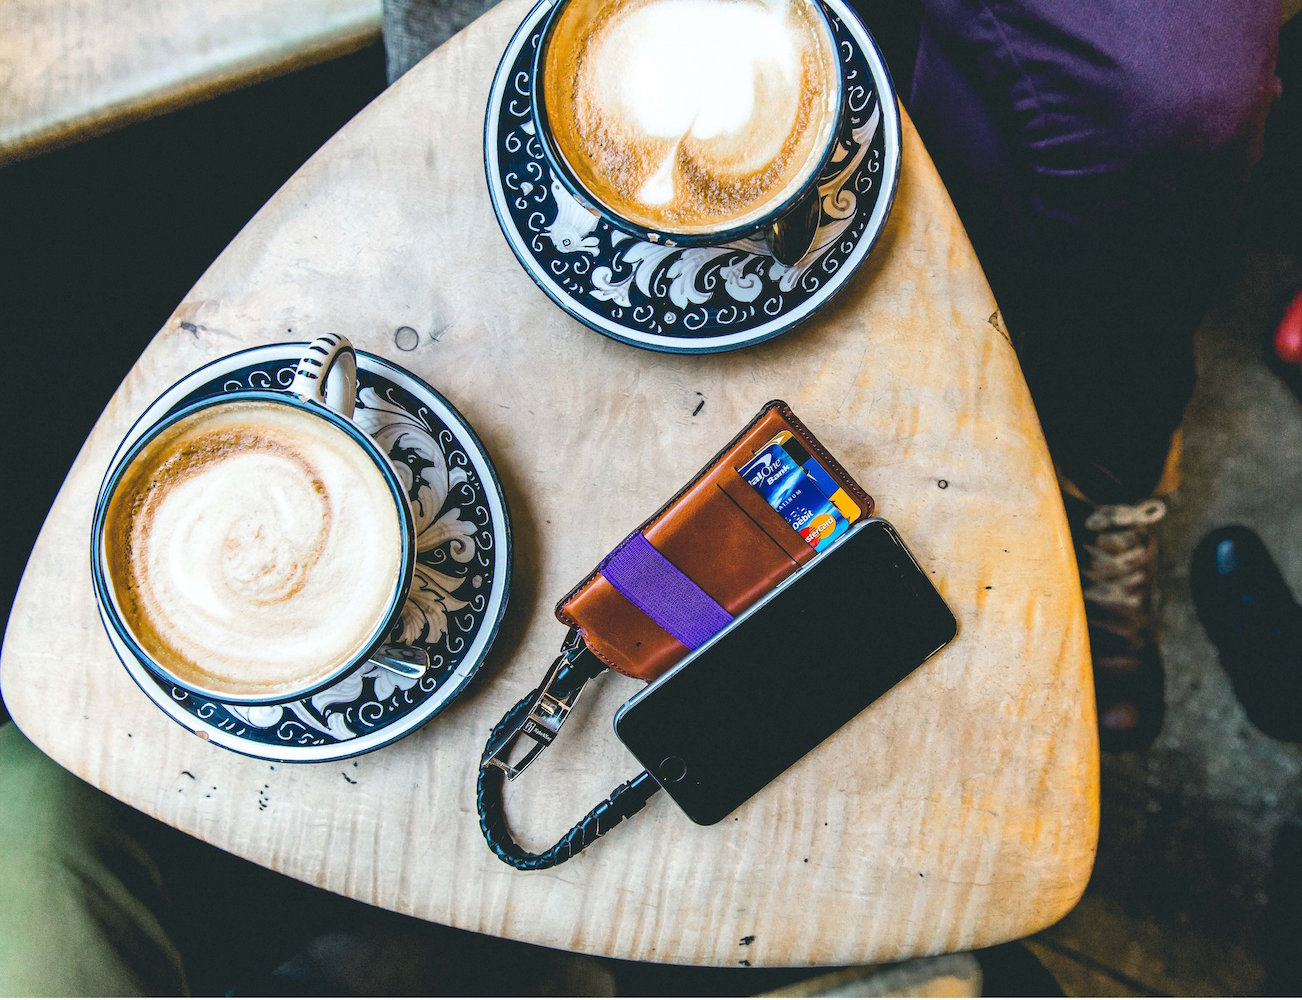 Tobacco/Violet Charging Wallet by LUCE – Power Bank With 2 Full iPhone Charge Capacity